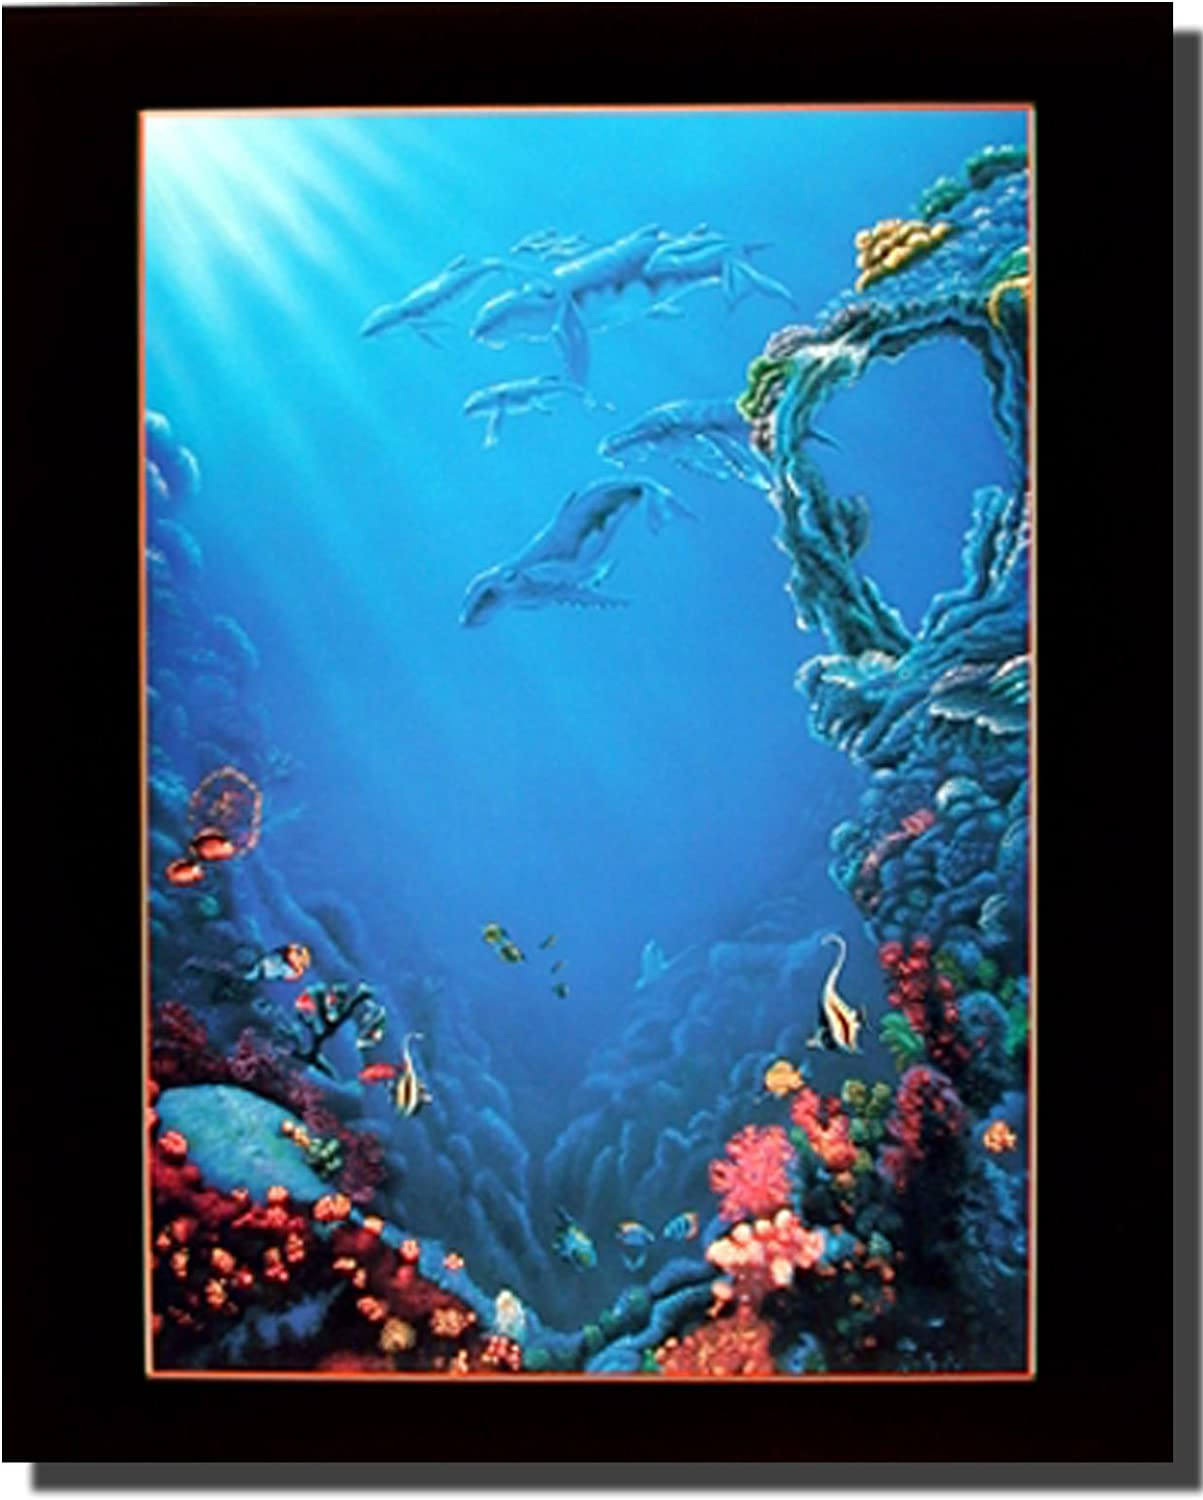 Ocean Tropical Fish and Coral reef Underwater Sea Wall Decor Art Print Poster (16x20)